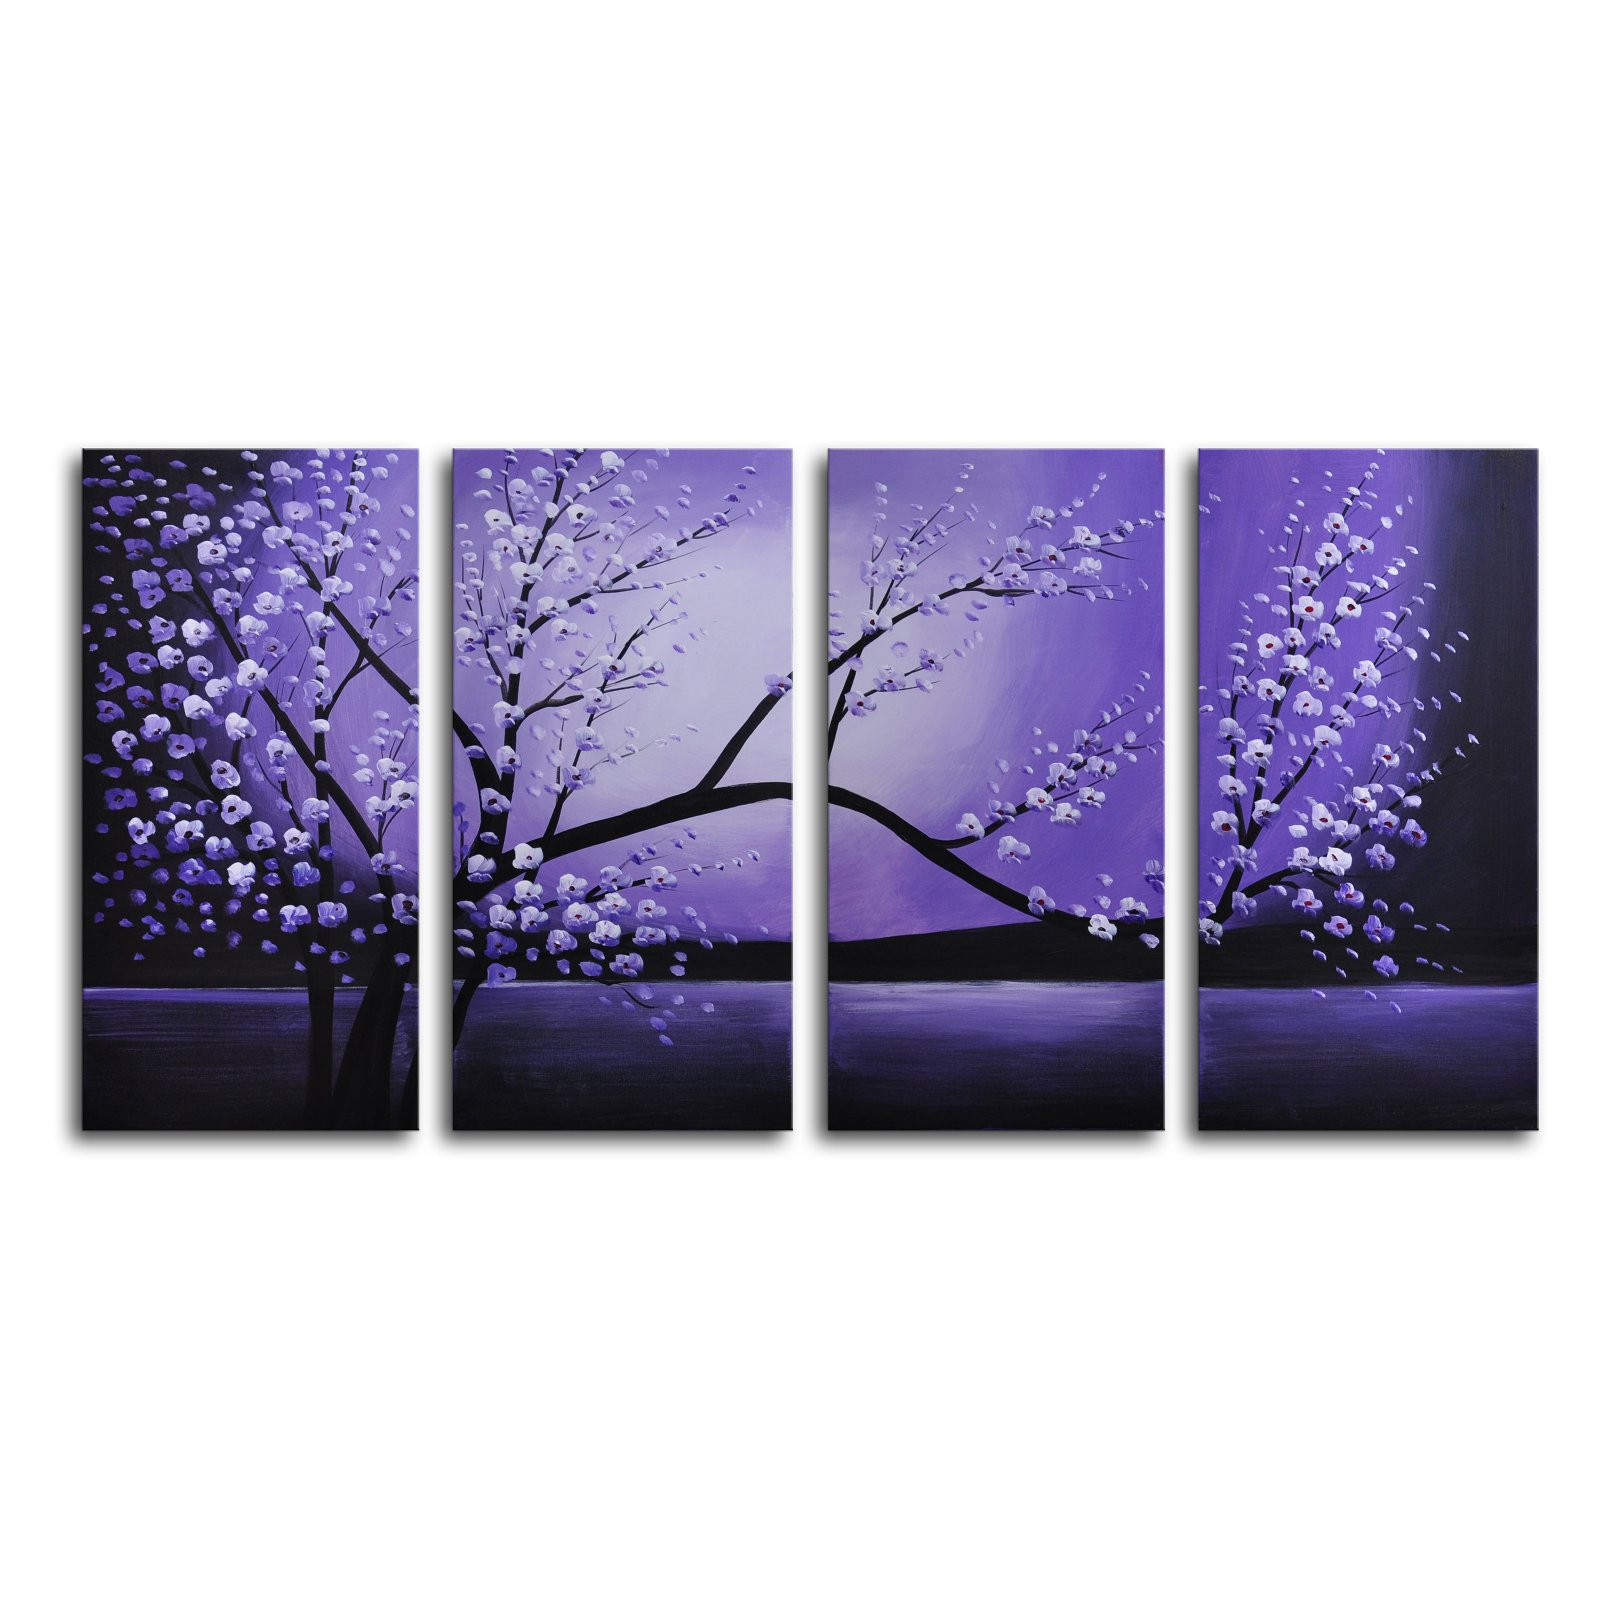 Winter Solstice 4-Piece Canvas Wall Artwork 48W x 24H in. by OMAX